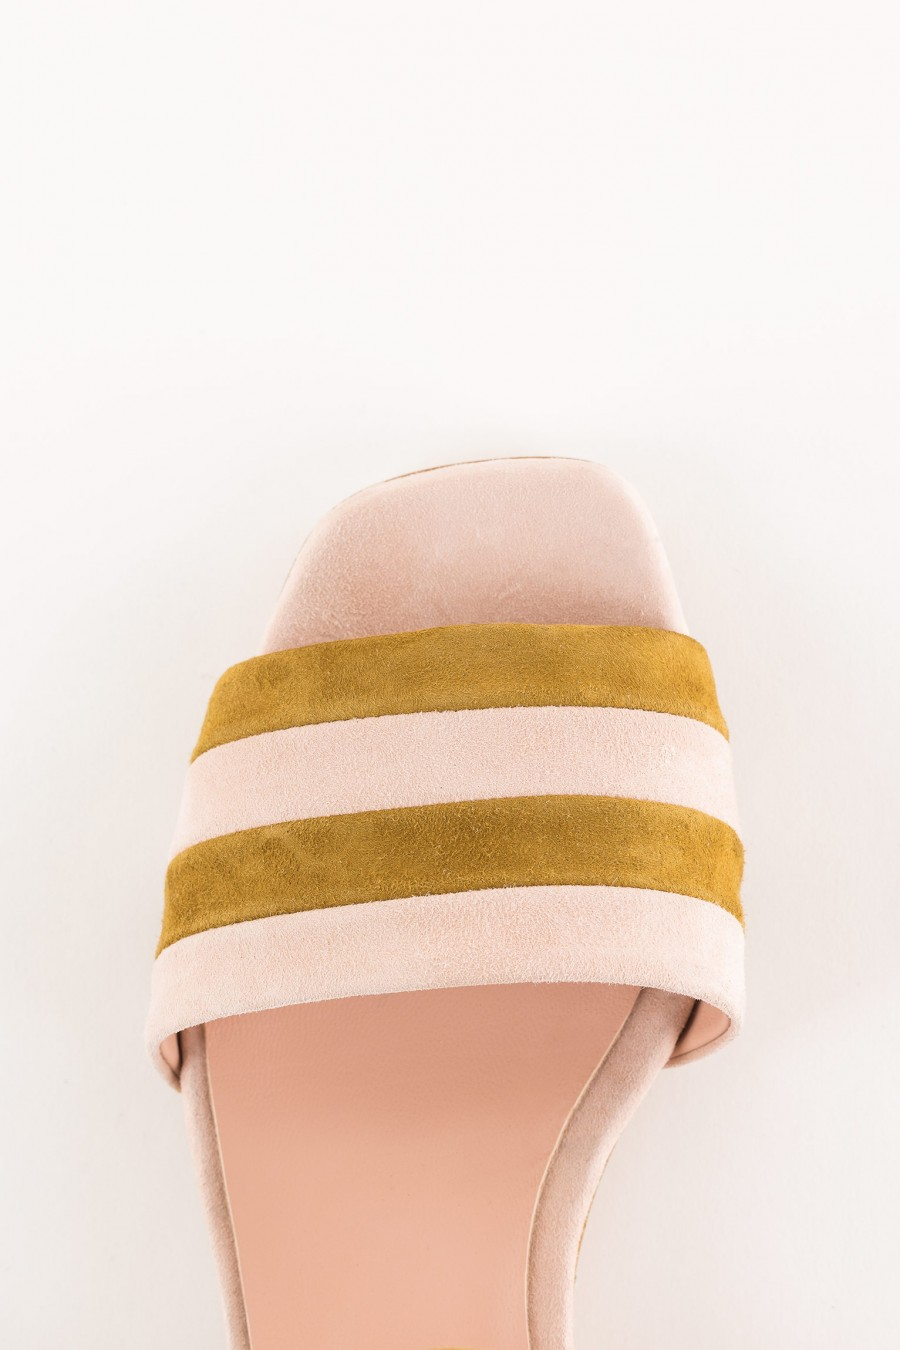 pink and mustard striped sandal